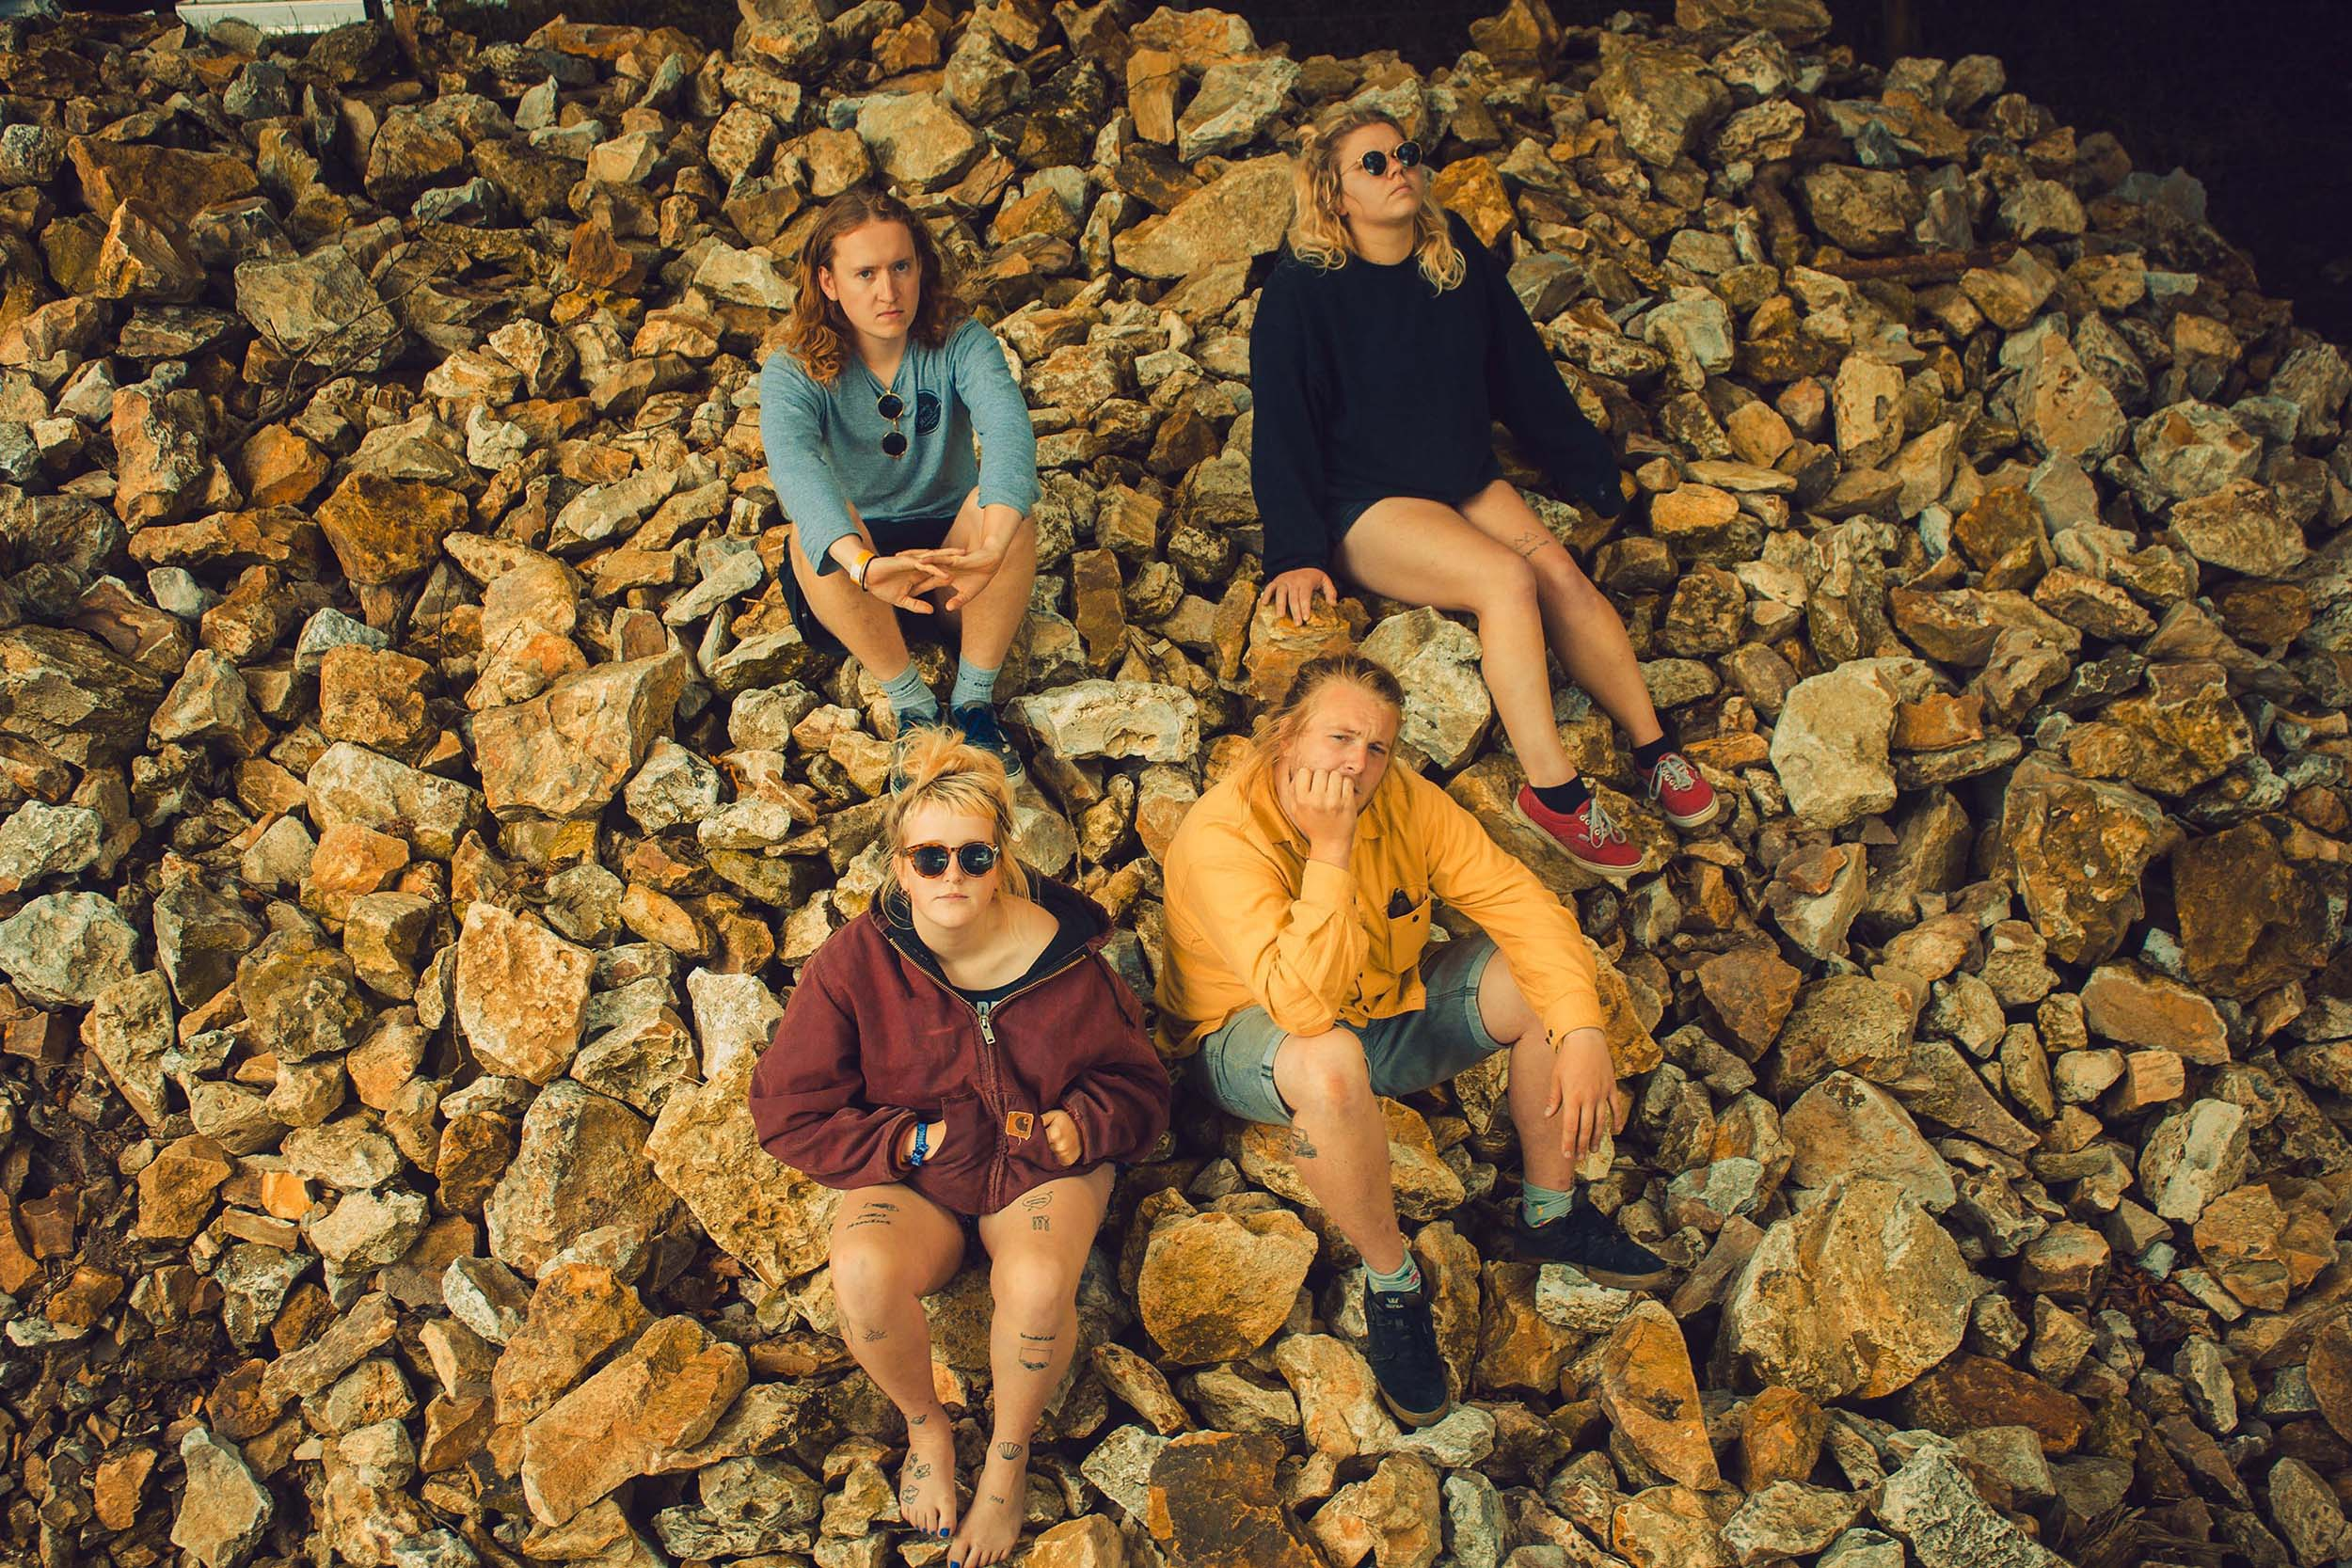 Penelope Isles slow things down on 'Shining Gold'